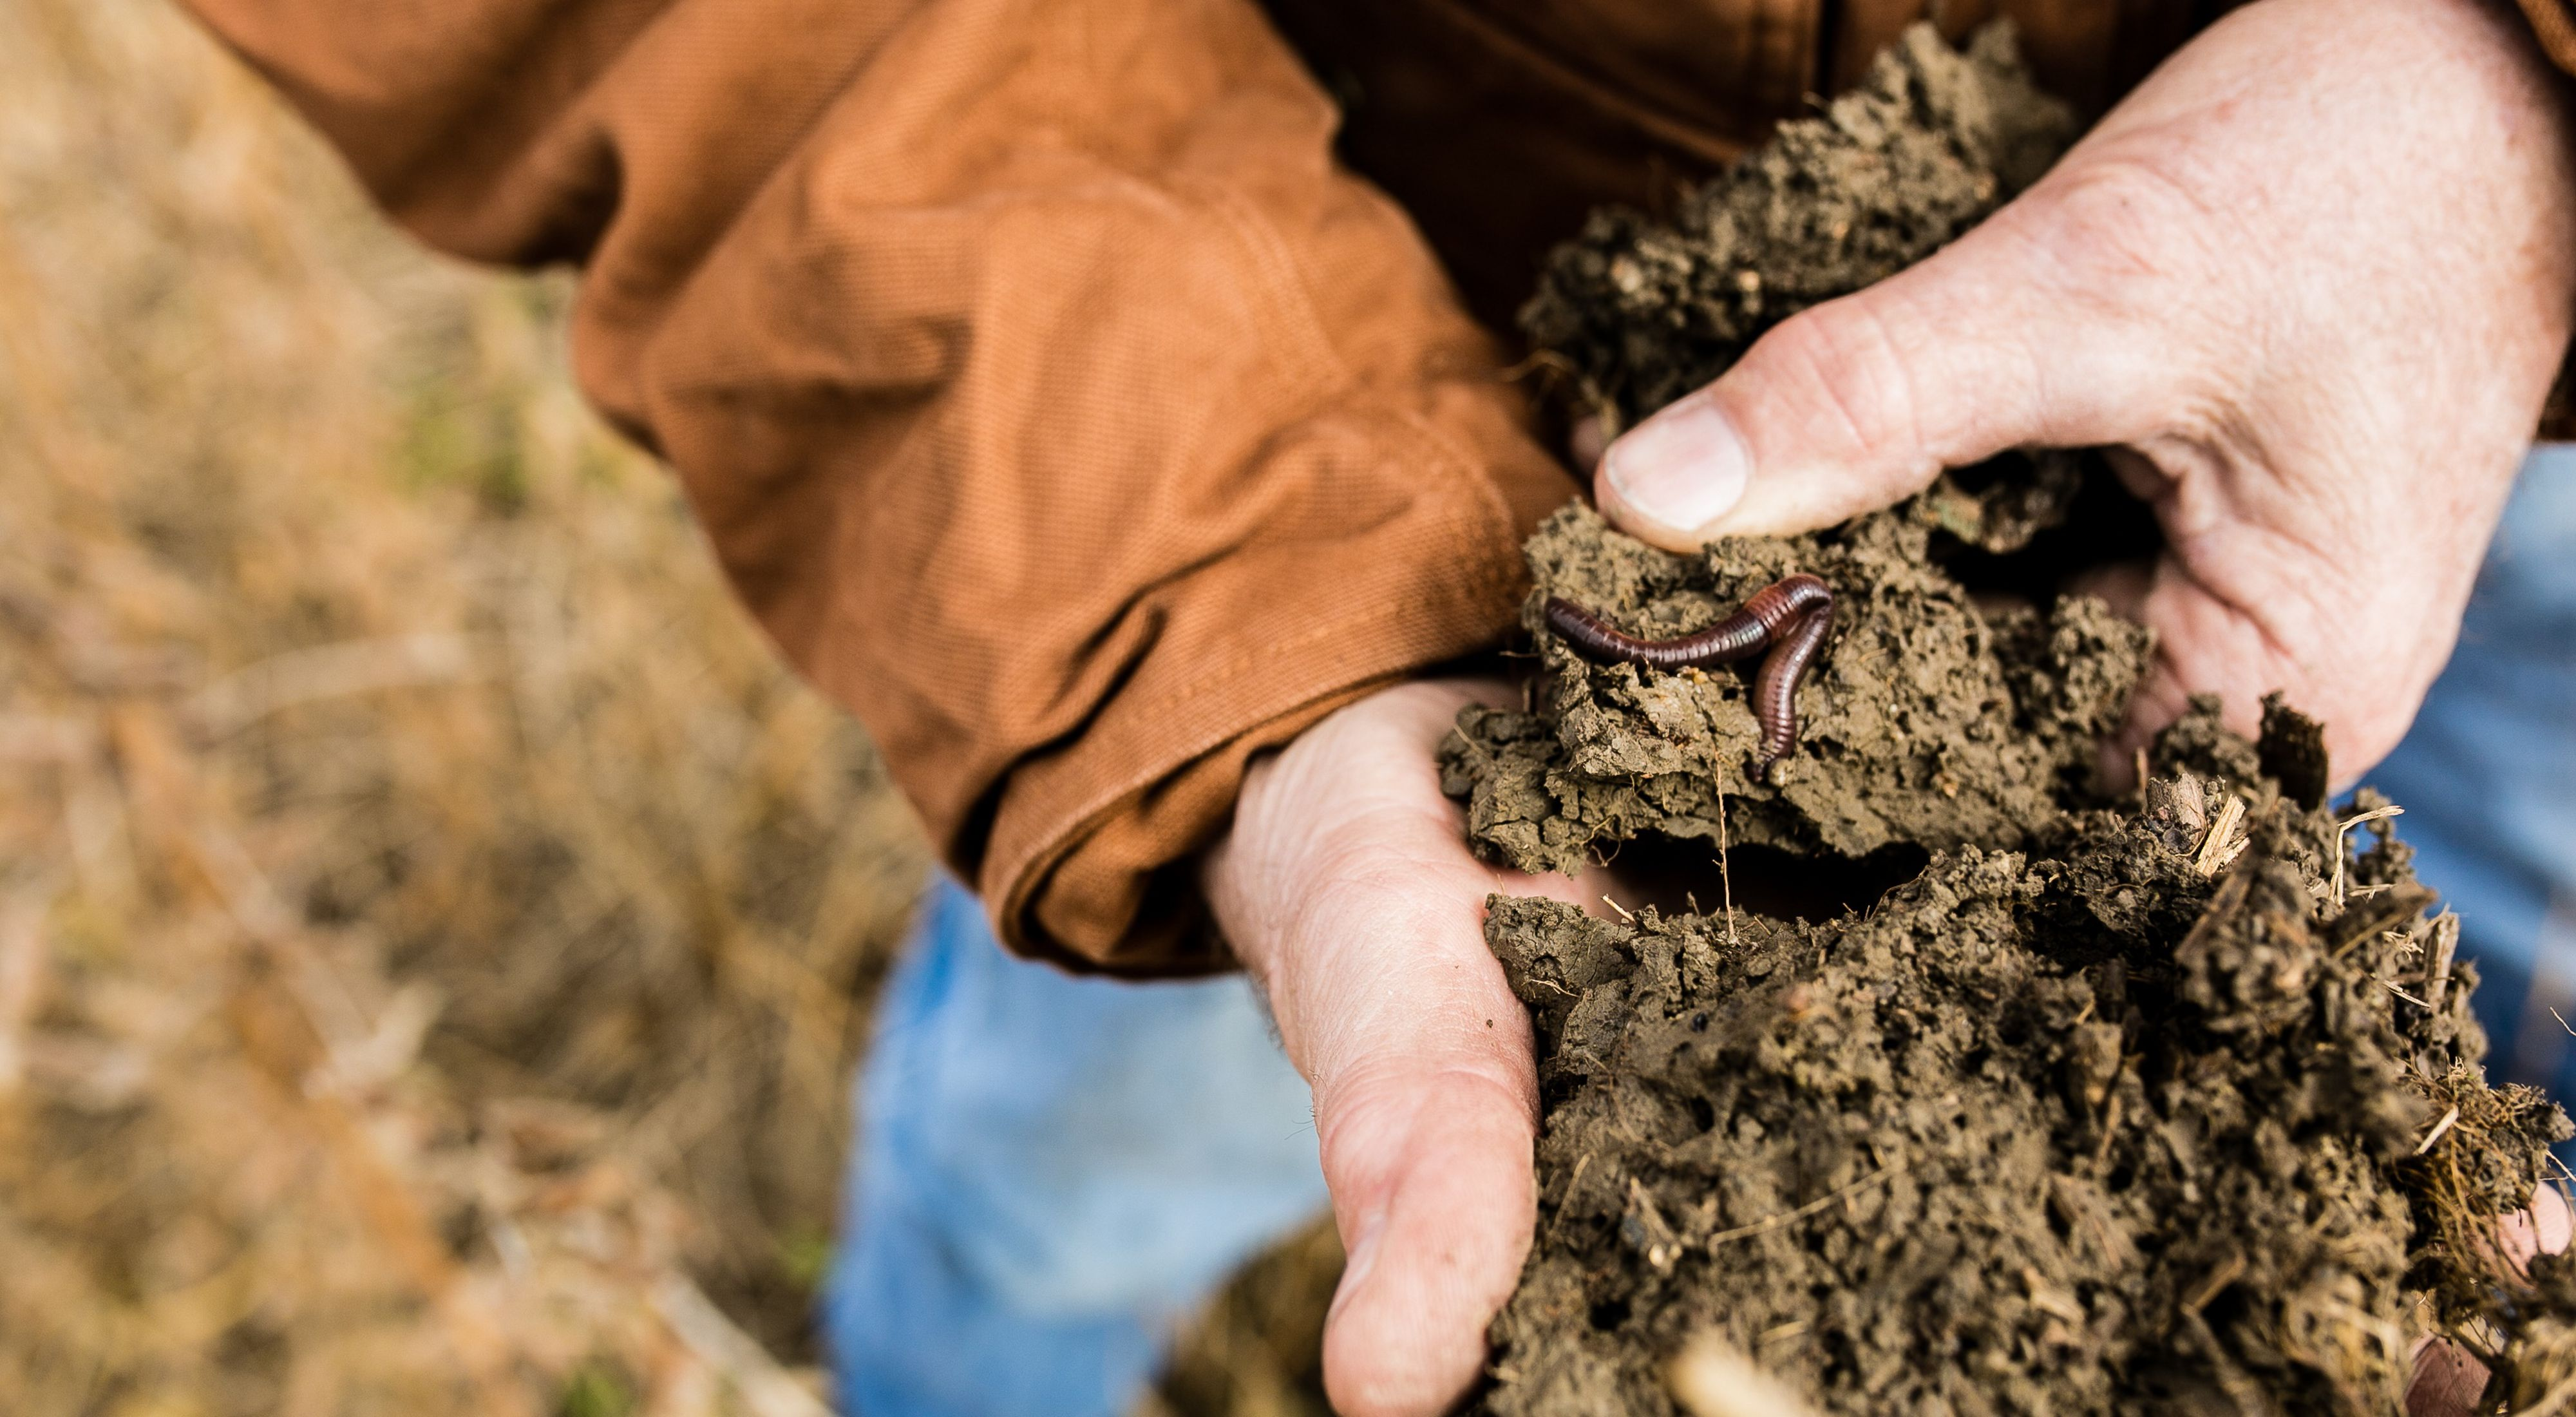 Man holding soil with a worm visible in it.